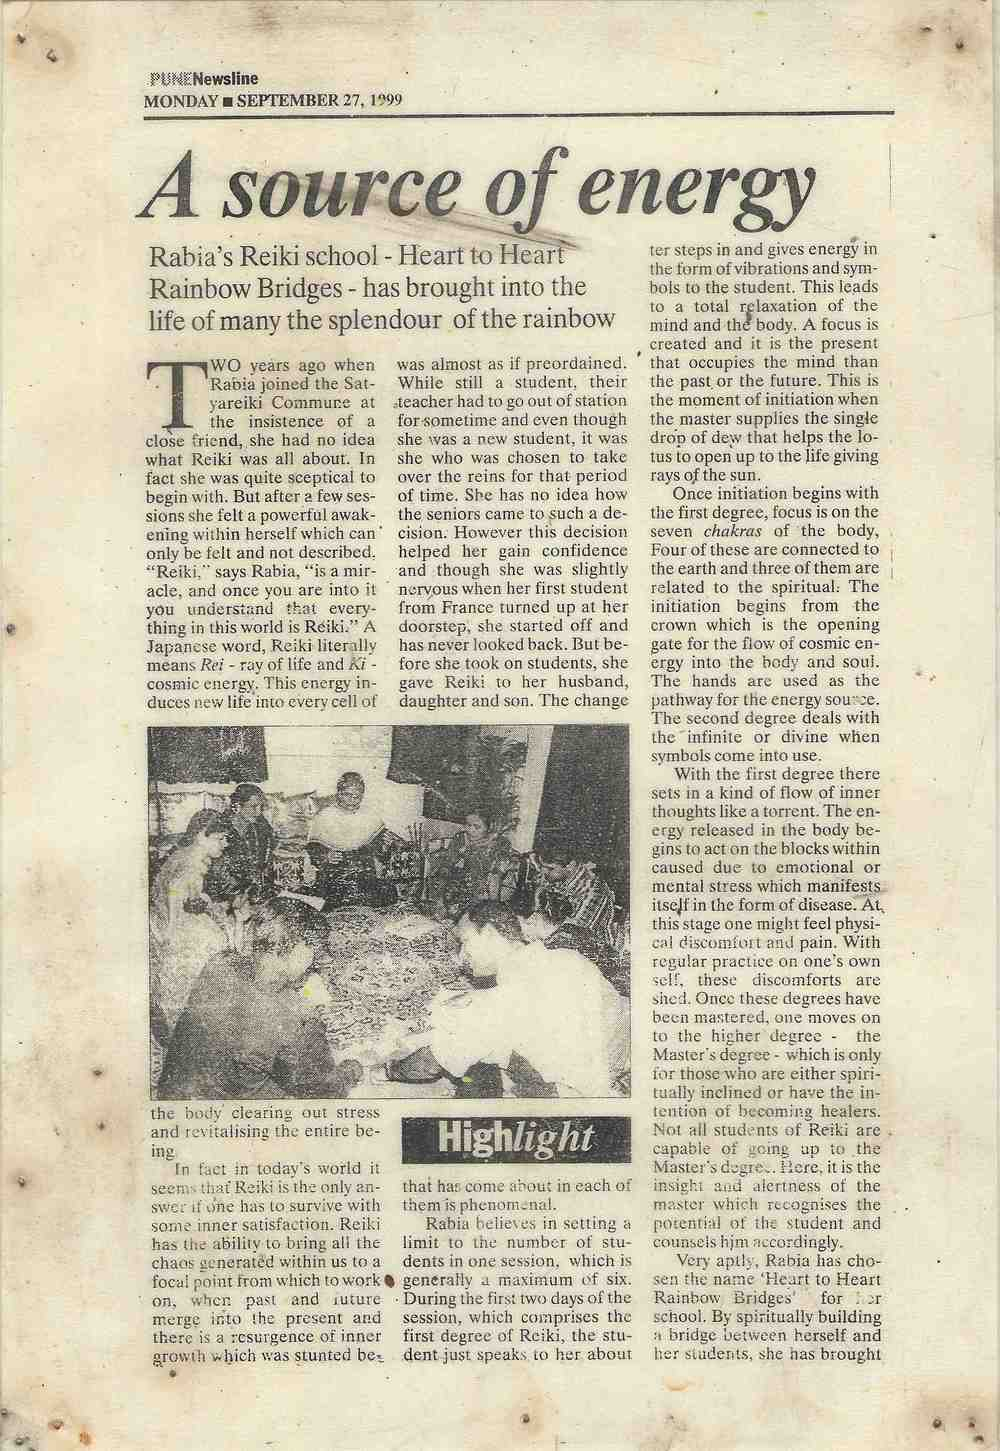 PUNE NEWSLINE / INDIAN EXPRESS (1999)